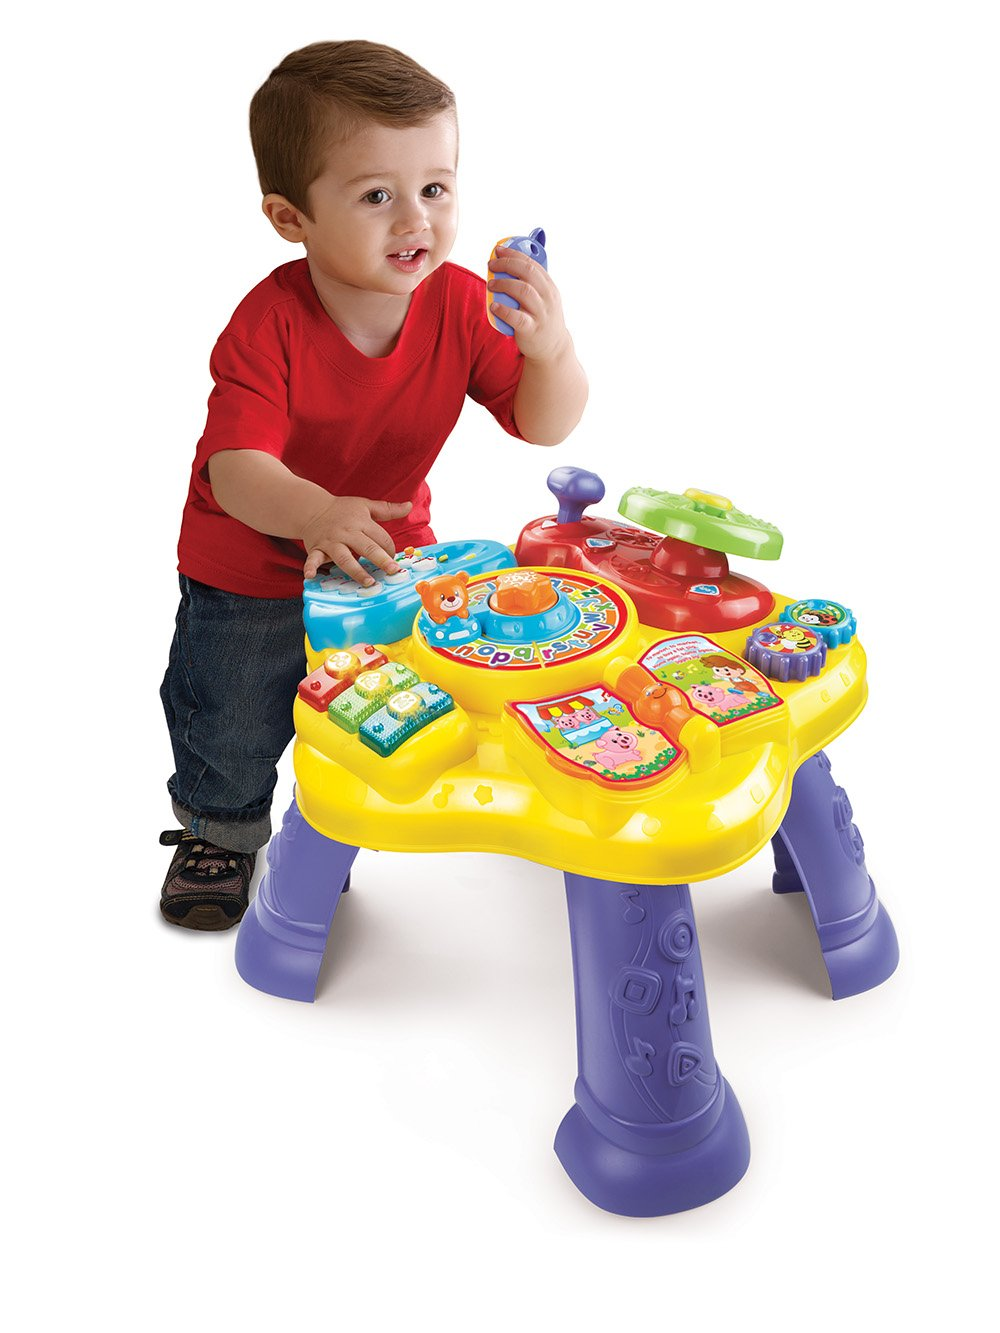 VTech Magic Star Learning Table (Frustration Free Packaging) by VTech (Image #5)